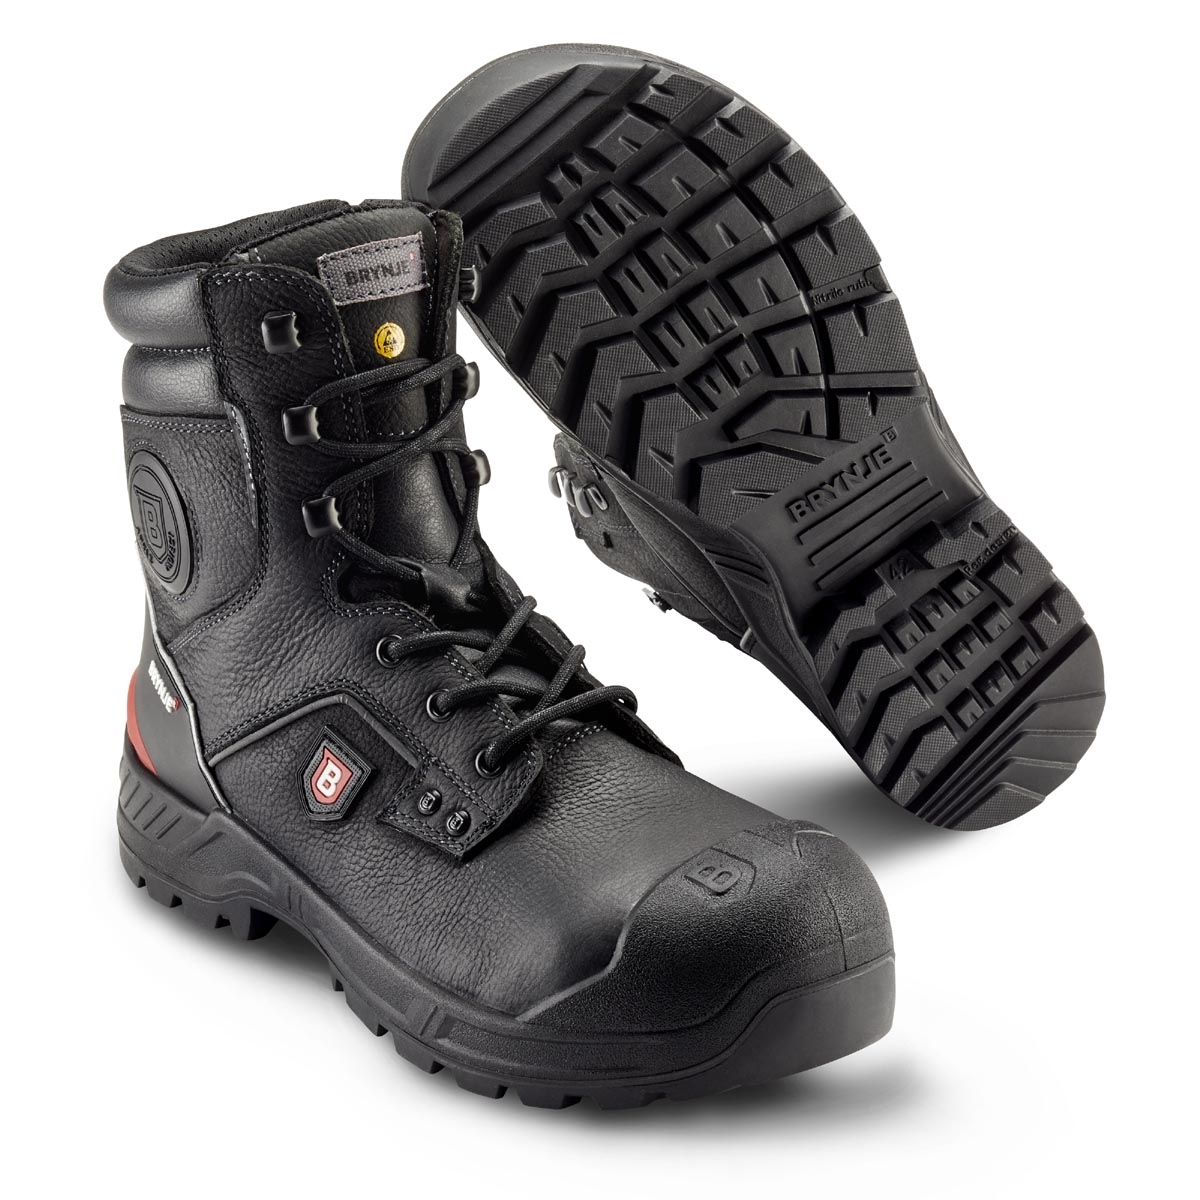 hot sale online b74be 3cf4e Brynje Winterstiefel 413 SUPPORTER HRO, S3 SRC, ESD. ALU-Kappe, Thinsulate™